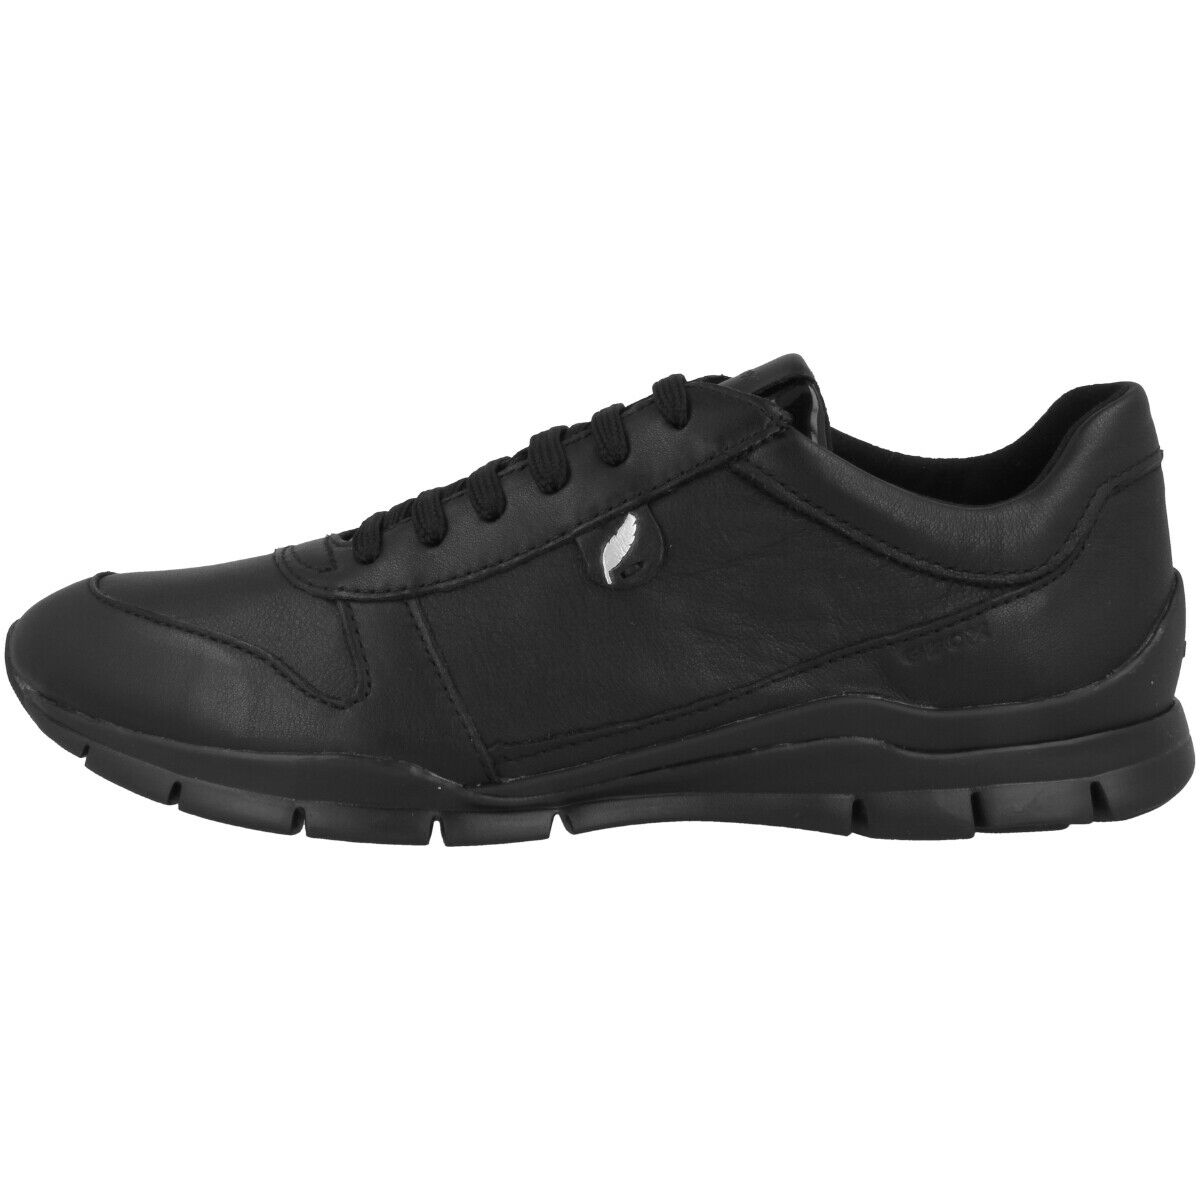 Geox D Sukie a shoes Women's Sneakers Casual Casual Casual Trainers Black D52F2A00043C9996 158818